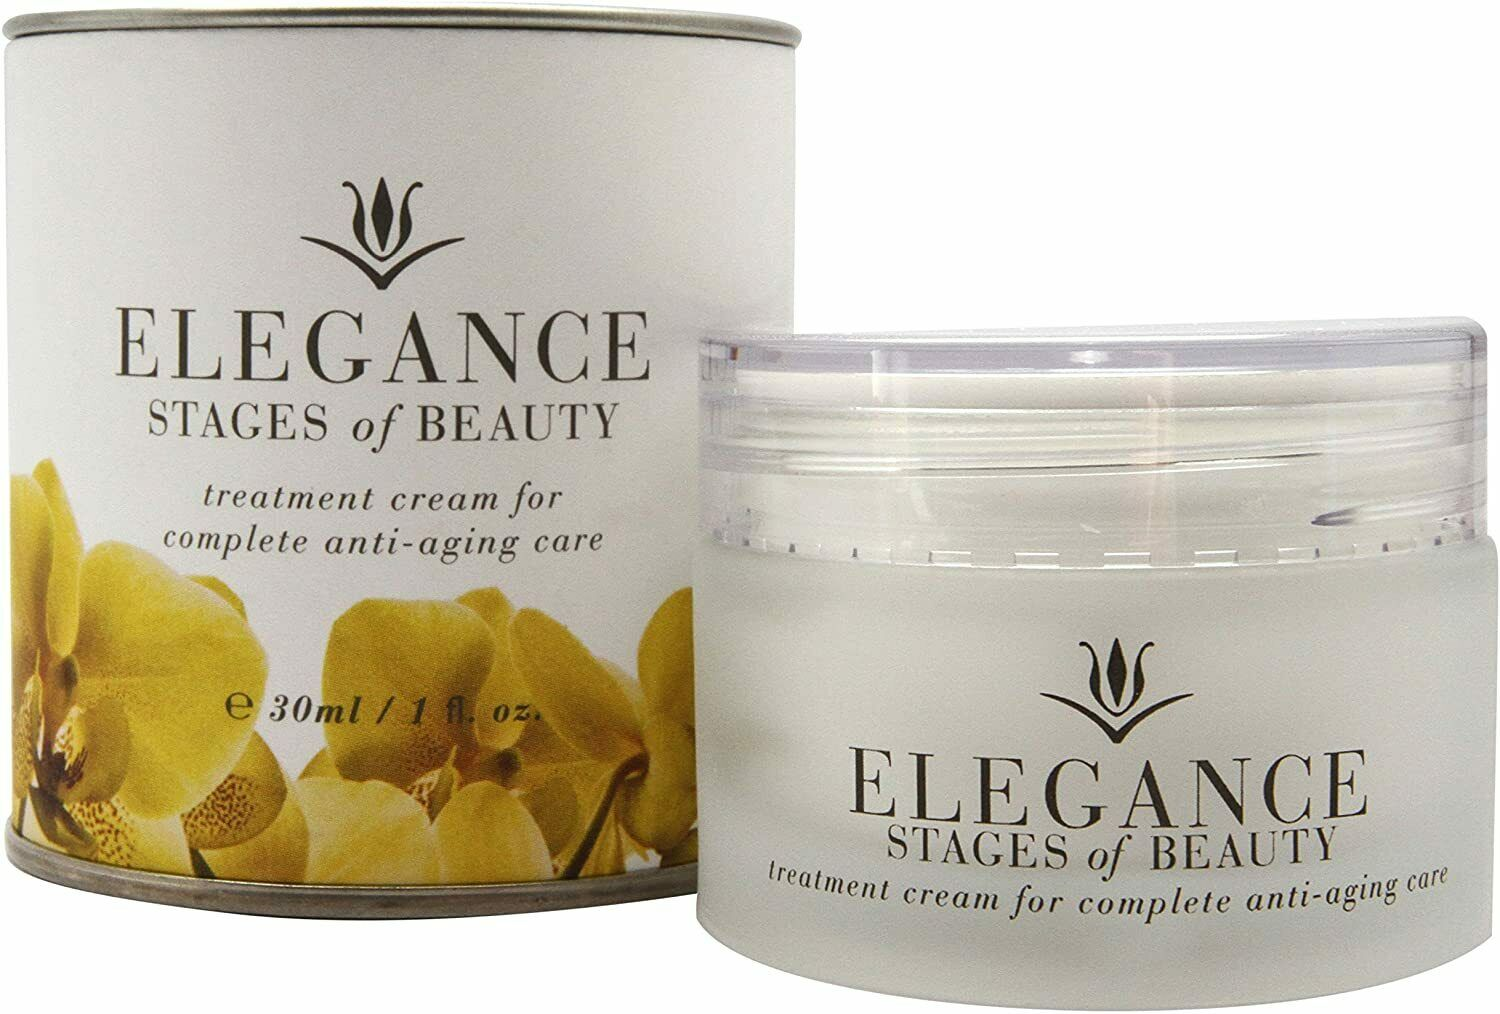 Stages of Beauty Elegance Treatment Cream w/ Resveratrol, Fight Wrinkles, 30mL